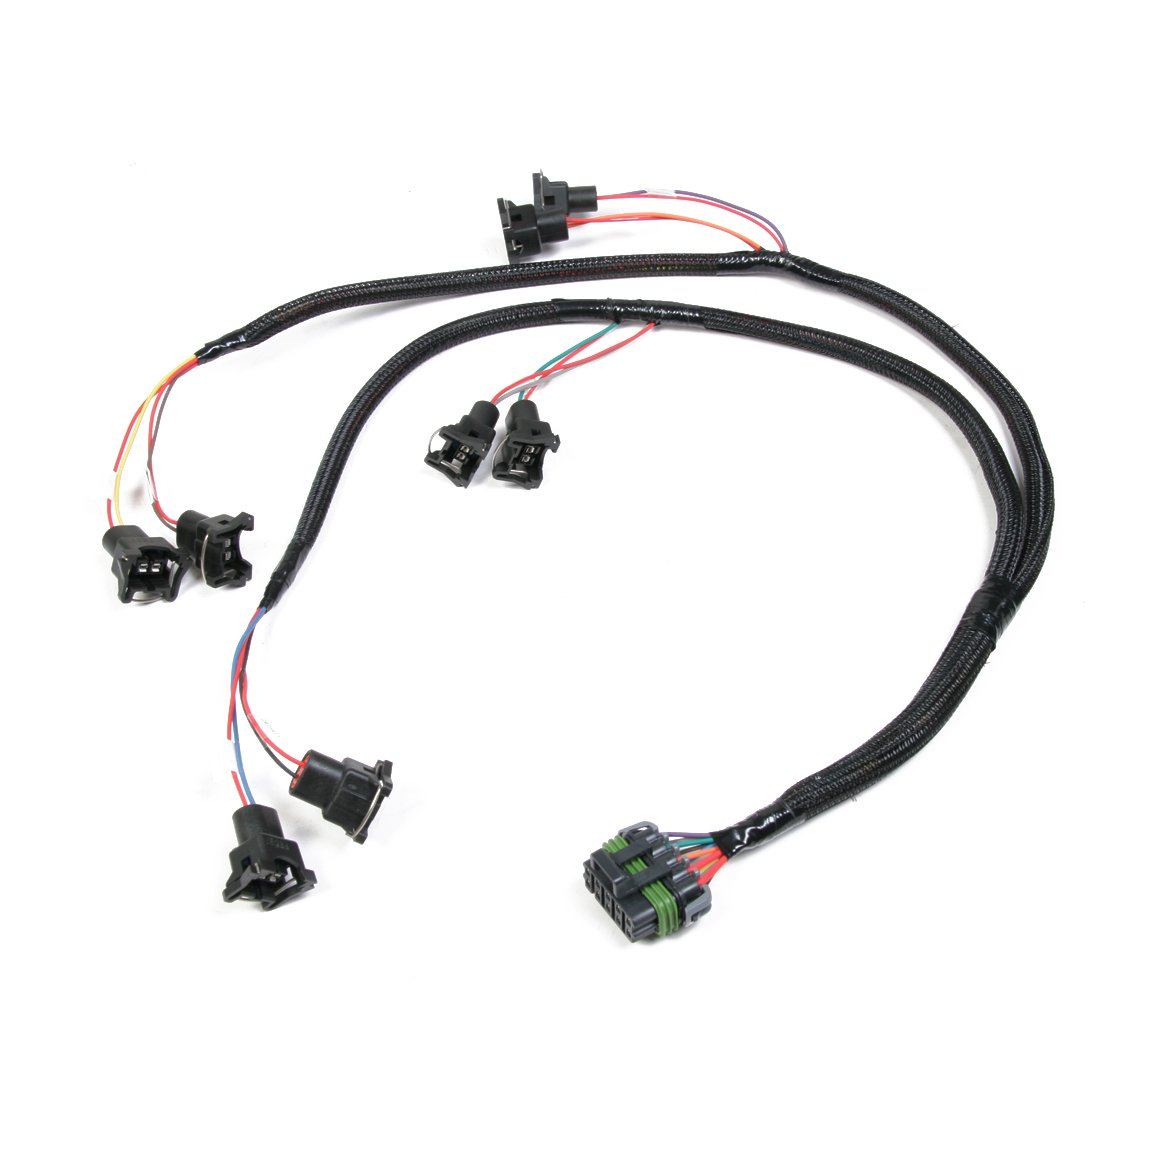 Holley Efi 558 200 V8 Over Manifold Bosch Style Injector Harness